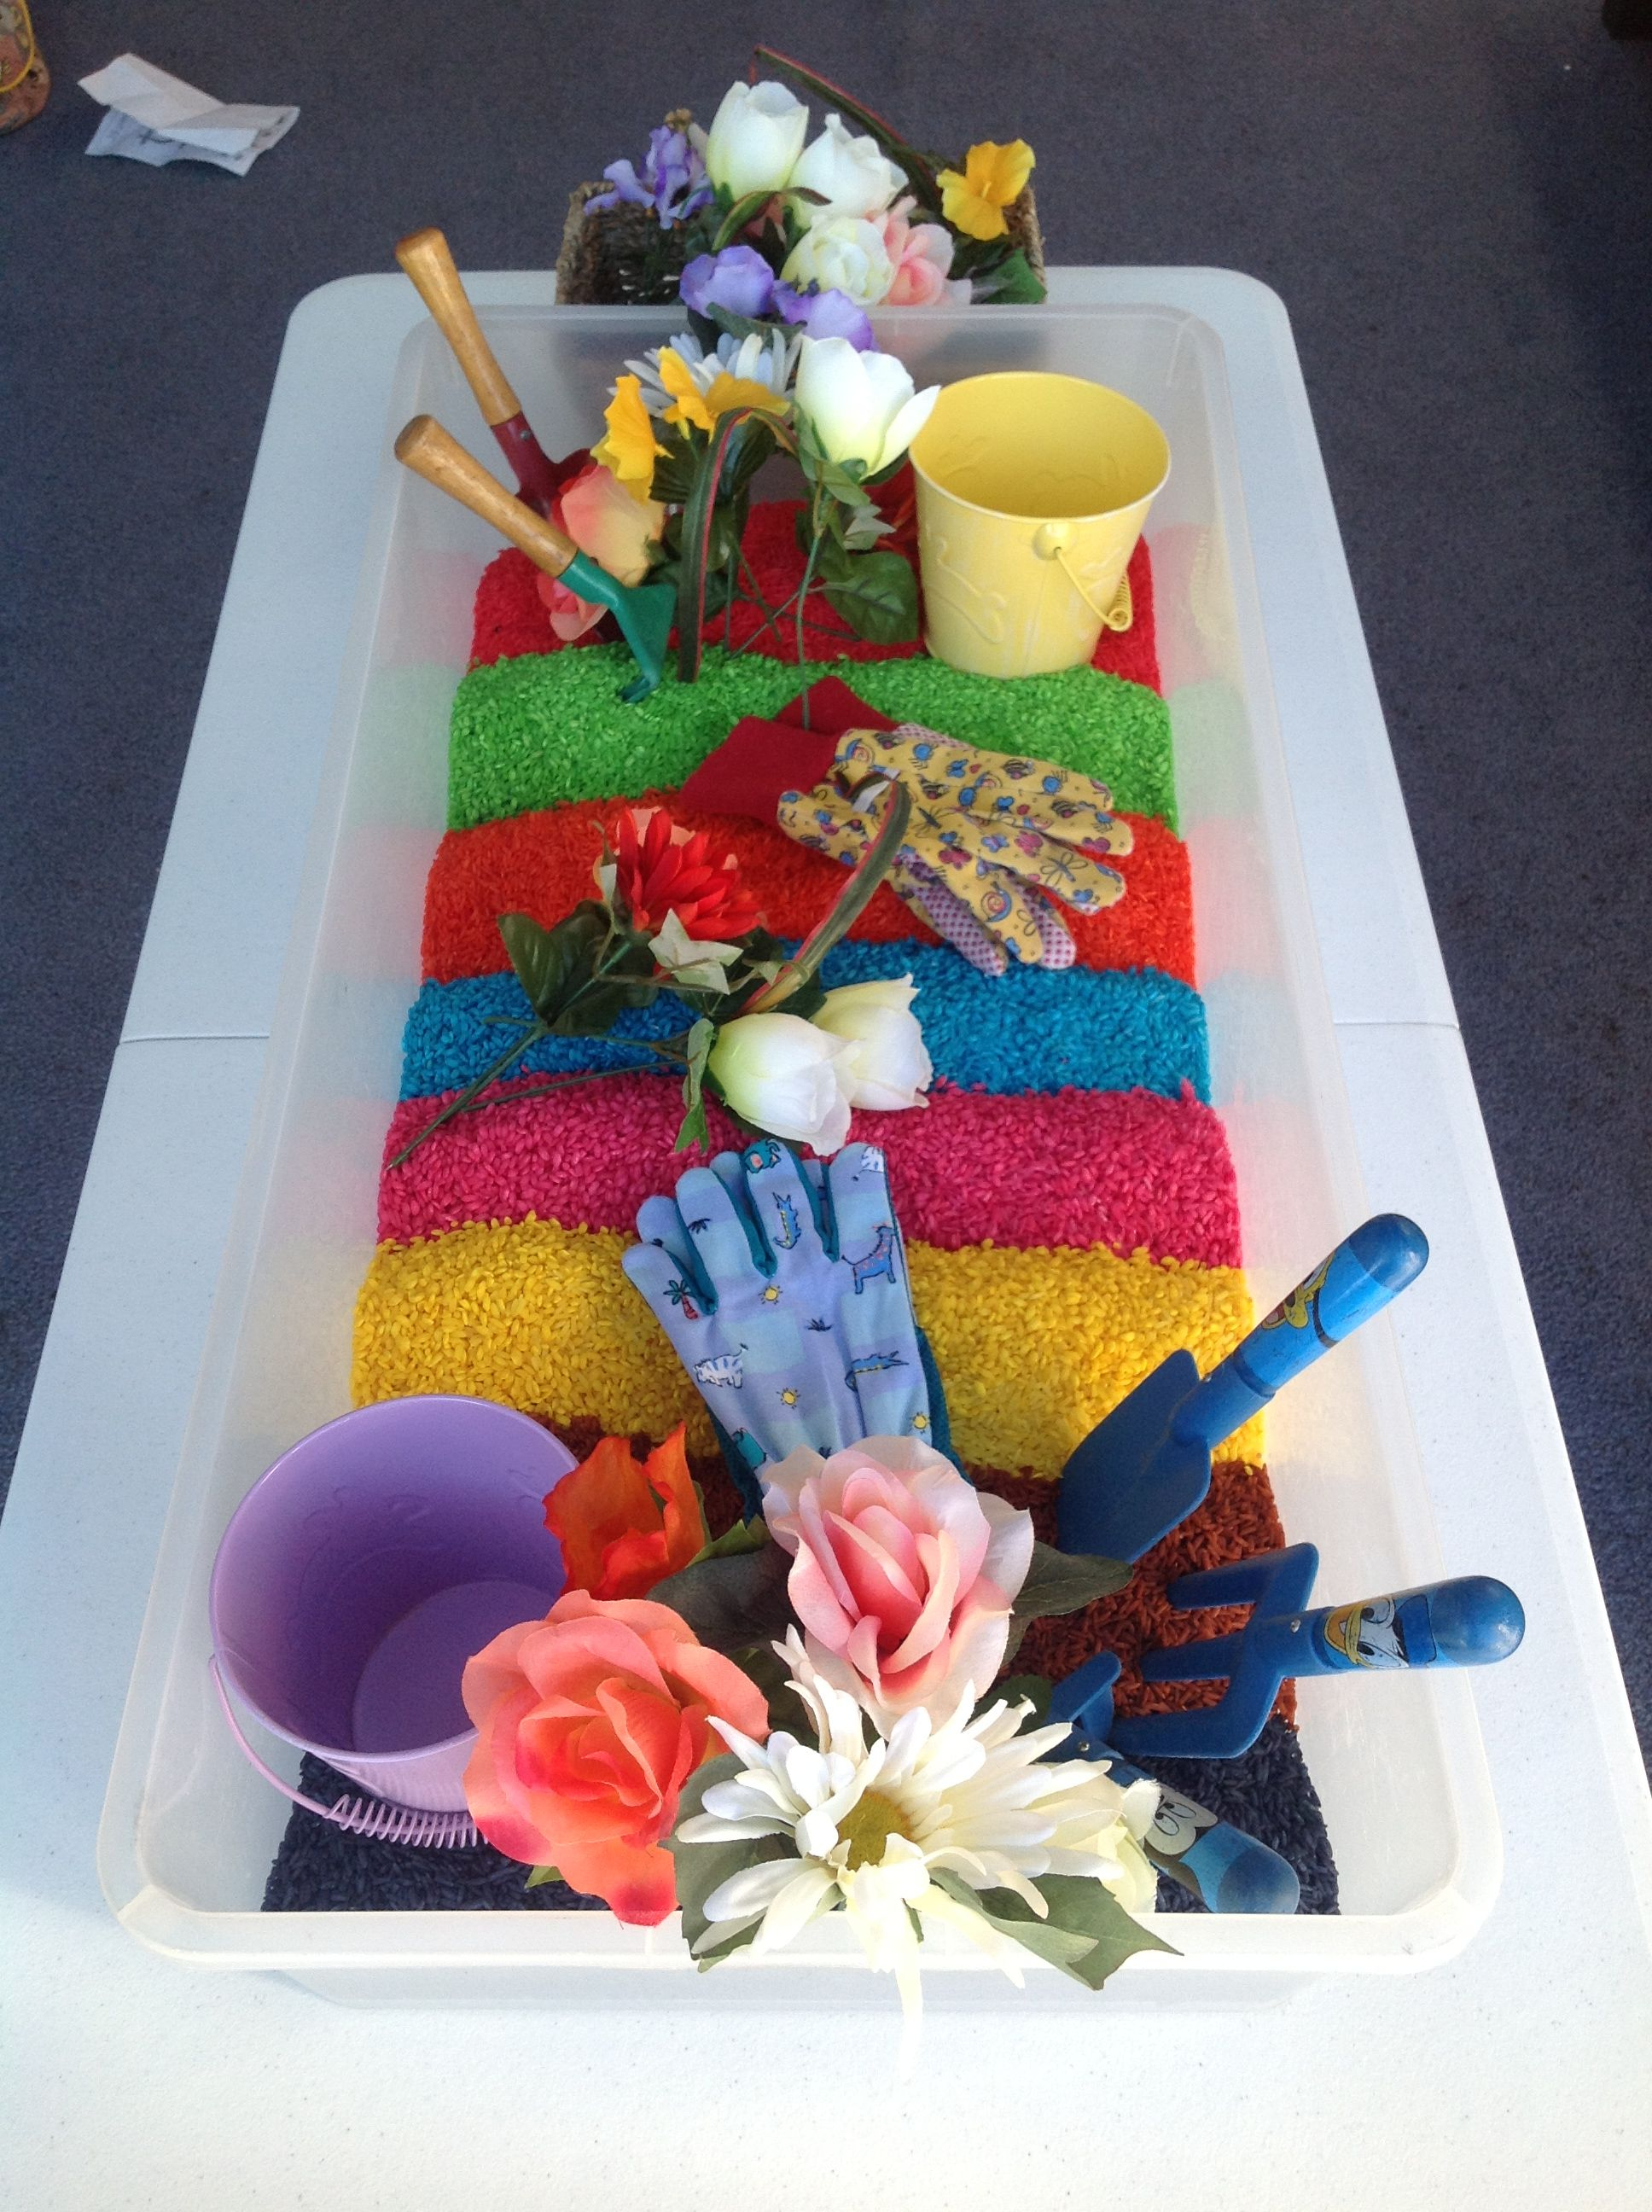 Invitation to Create - Rainbow rice and gardening tools.